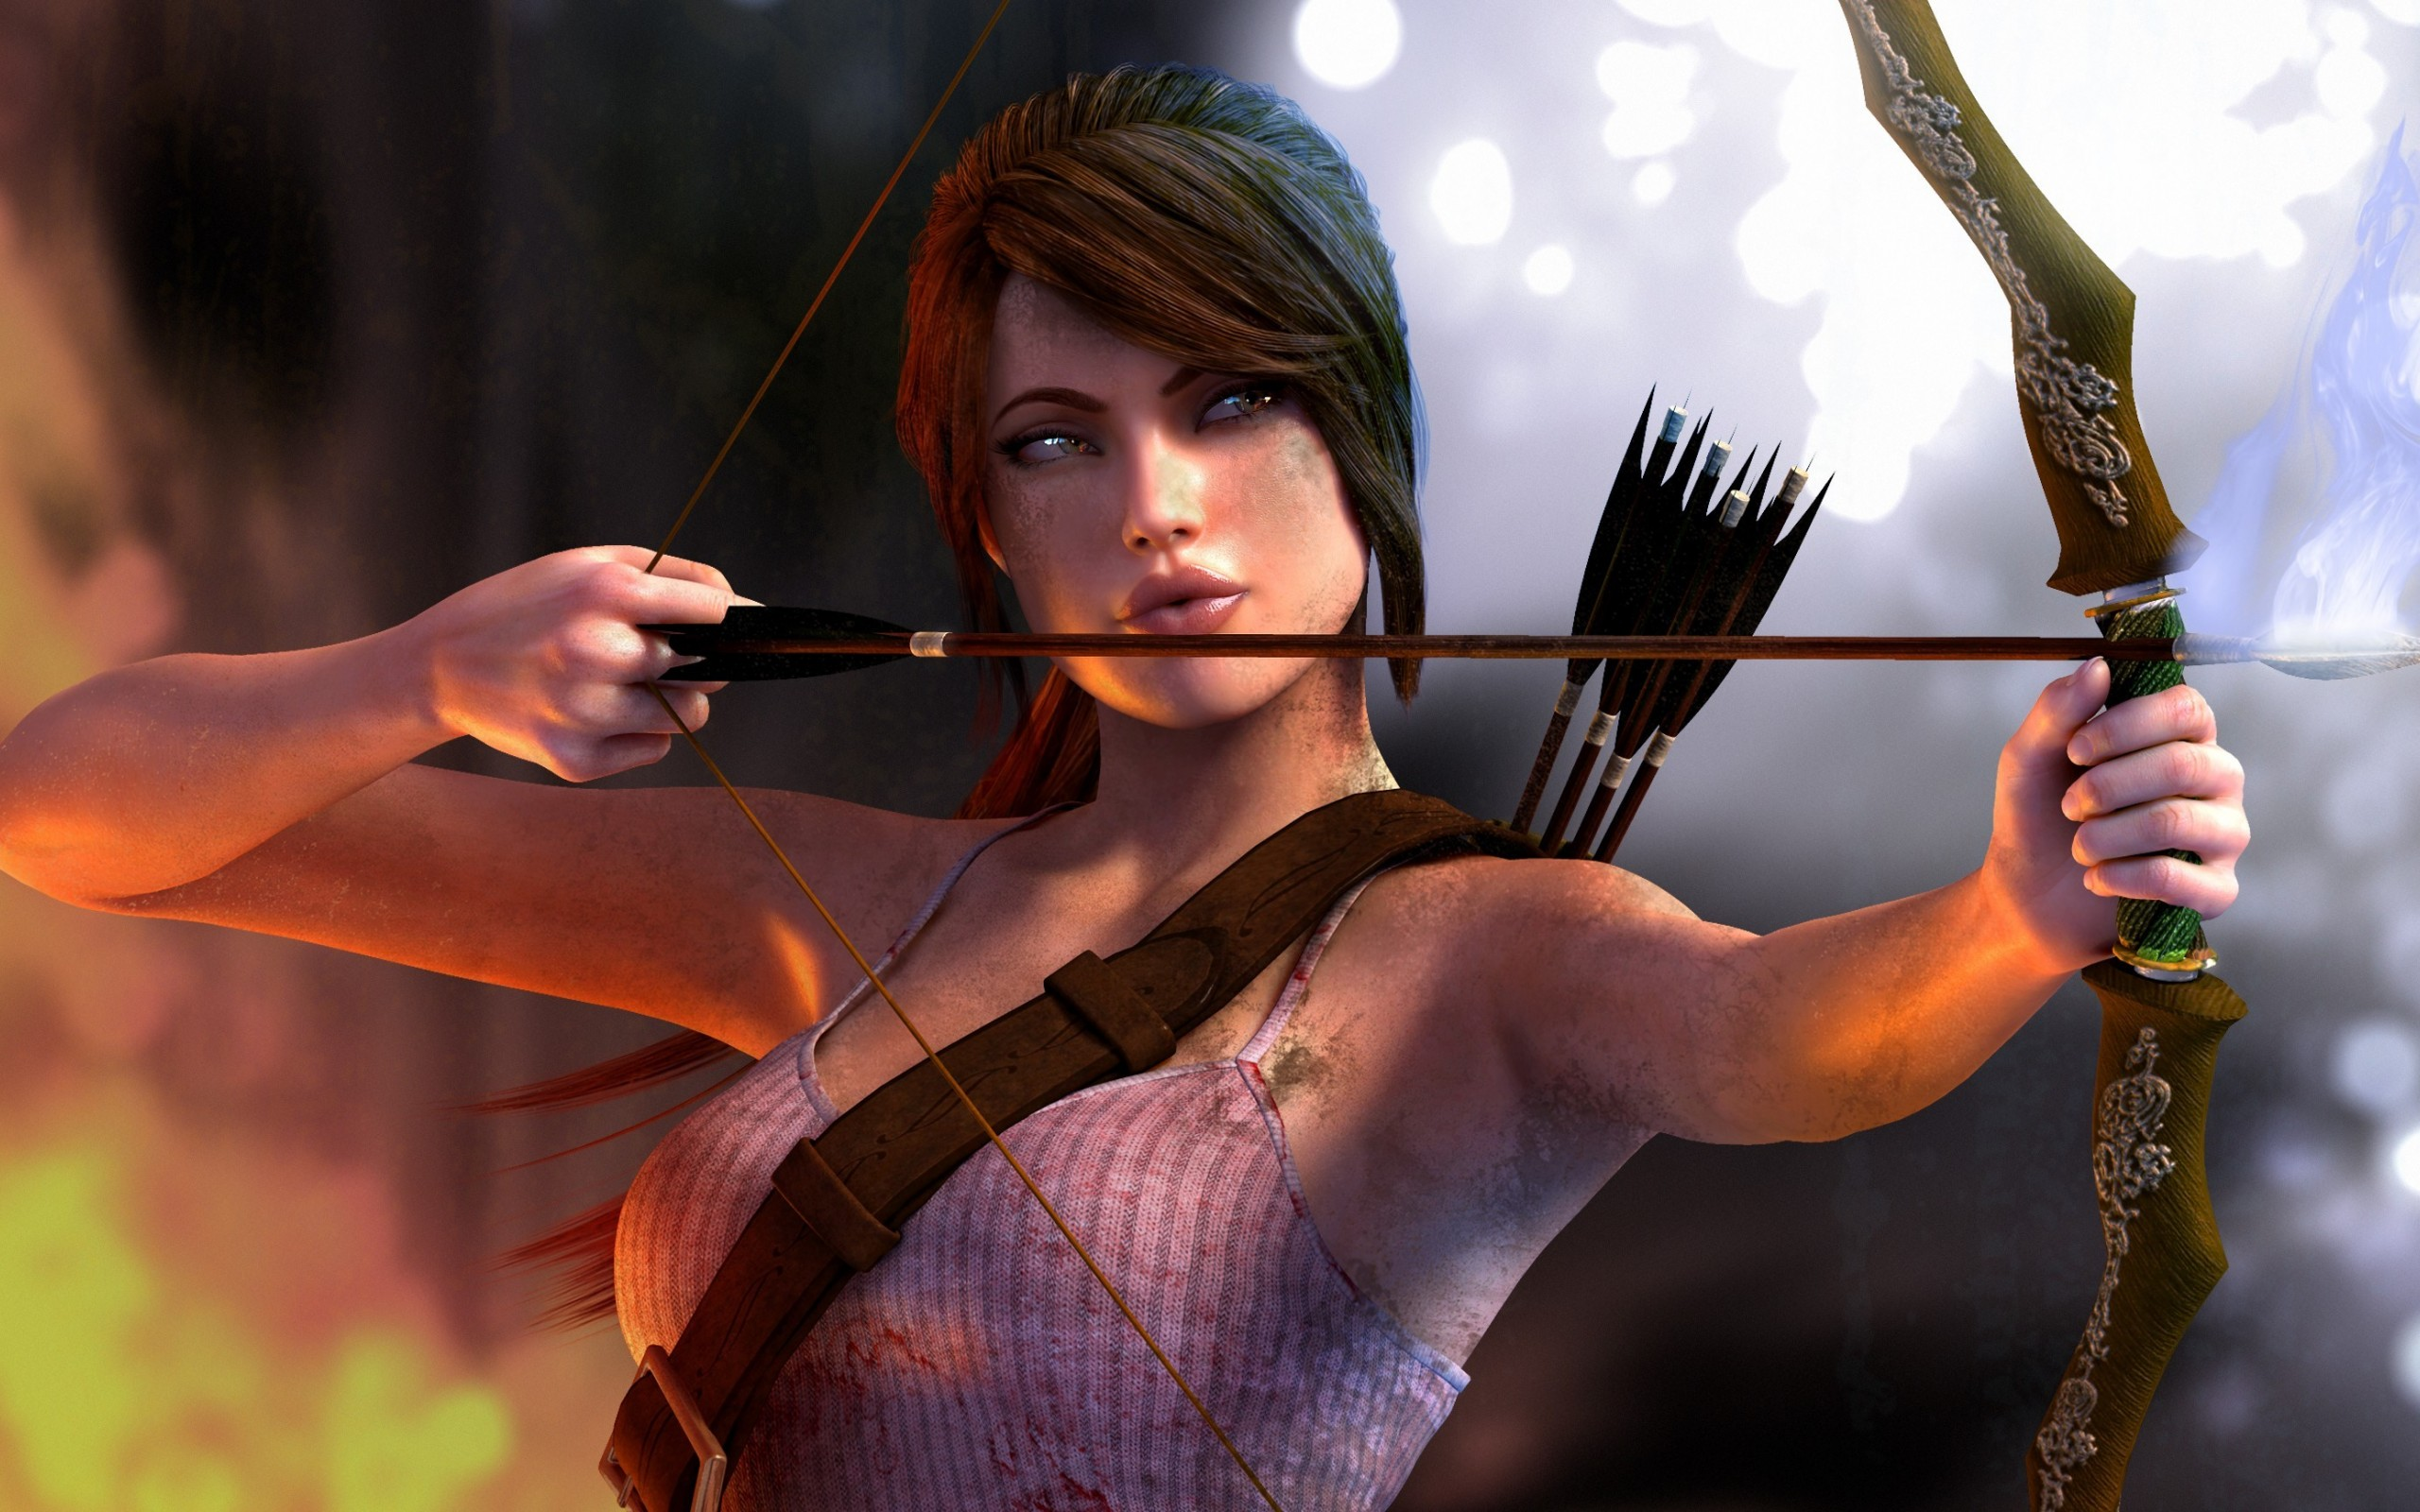 Tomb raider new hd wallpapers 2015 all hd wallpapers New all hd video